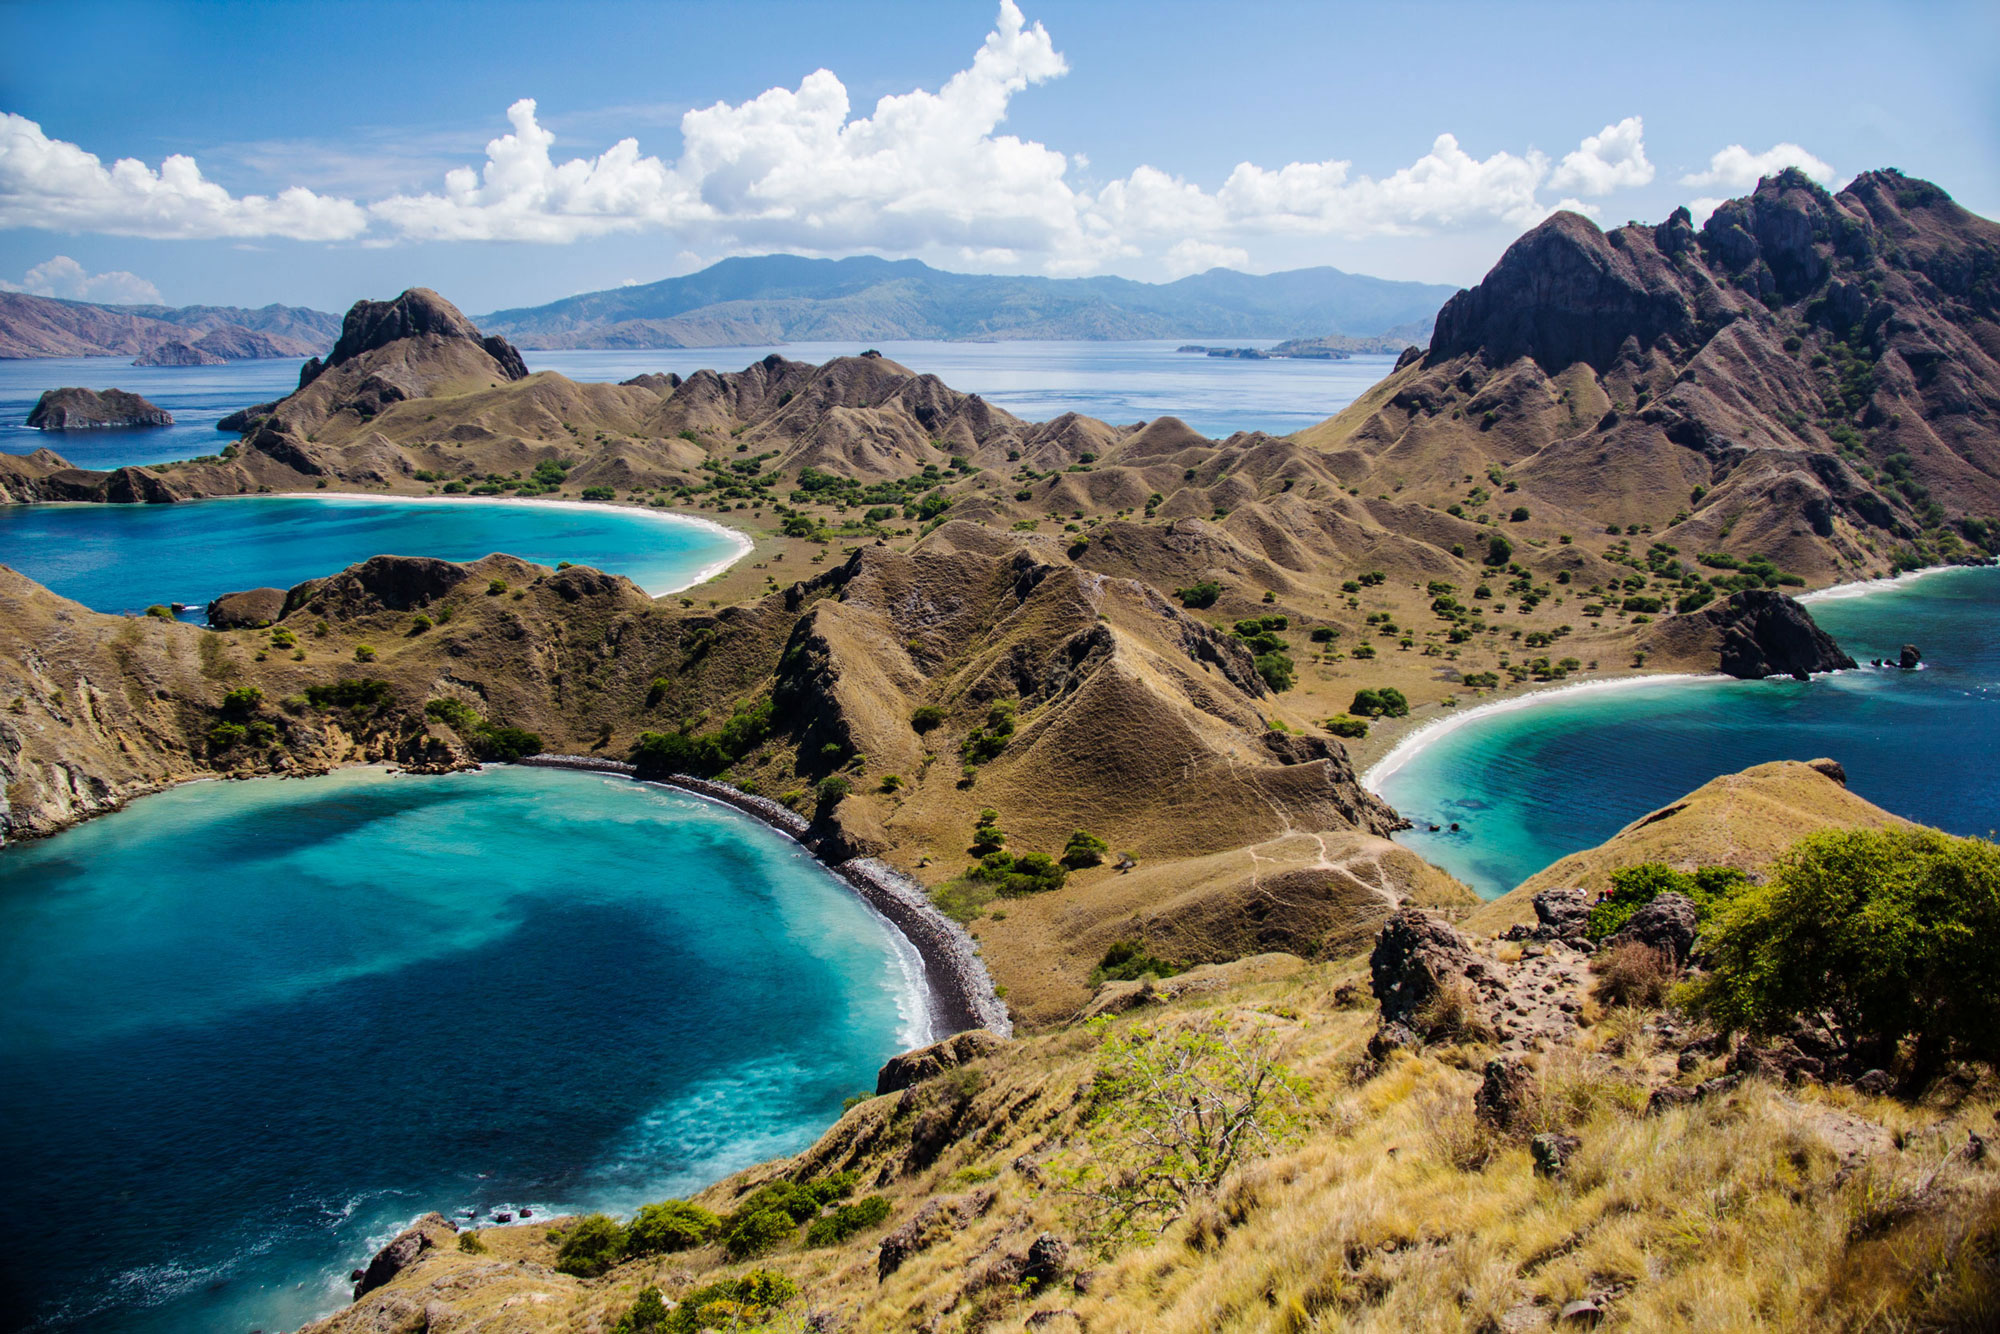 The breathtaking view of Padar. Image : peekholidays.com